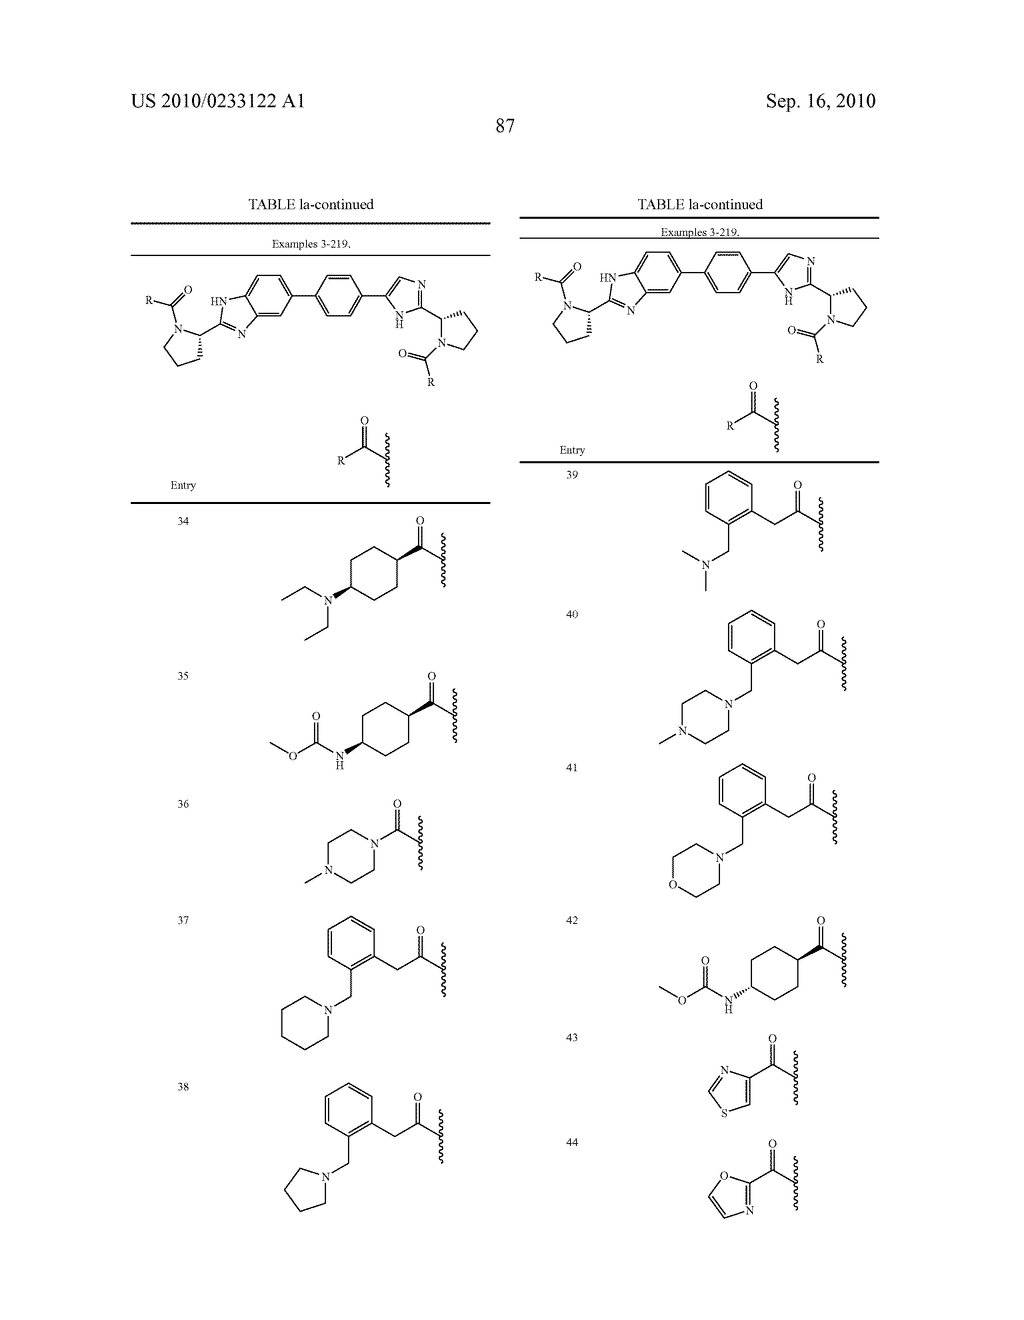 NOVEL BENZIMIDAZOLE DERIVATIVES - diagram, schematic, and image 88